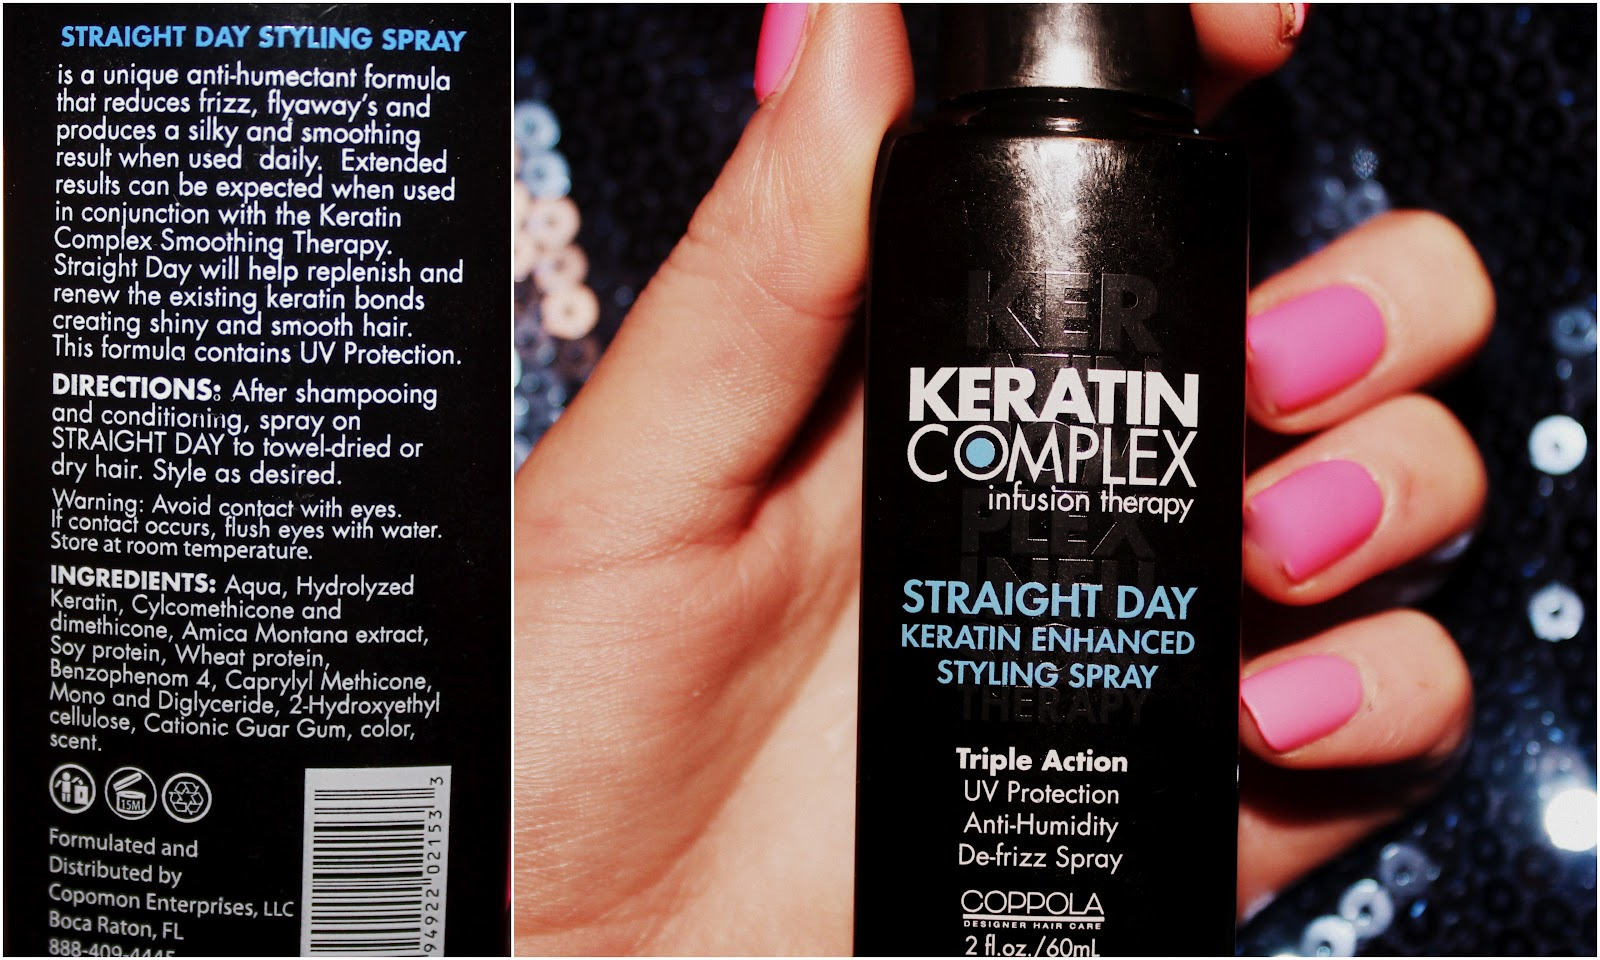 Blow Dry in a Bottle? Keratin Complex infusion therapy 'Straight Day